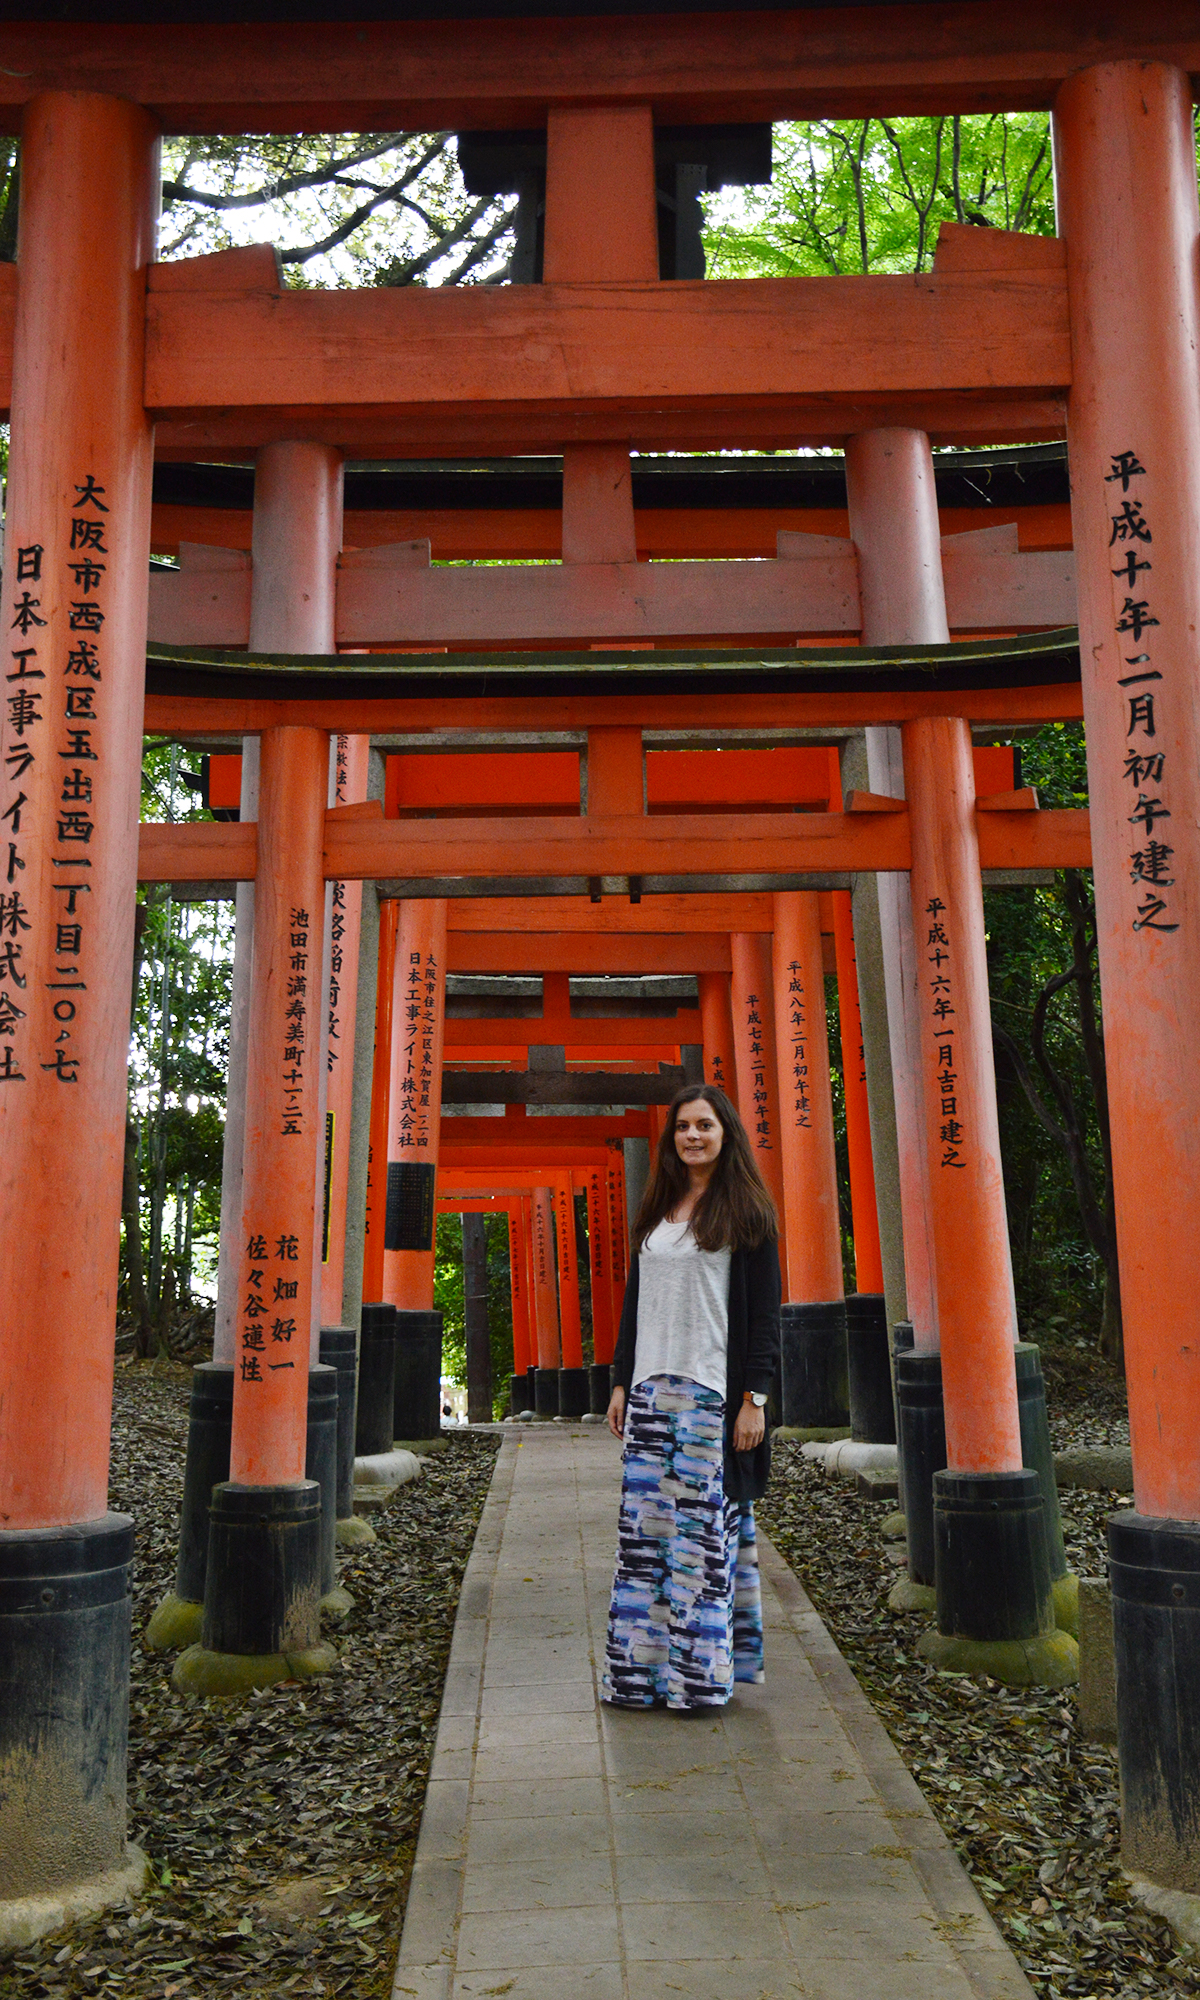 Fushimi Inari Taisha Carmen Double-Barrelled travel